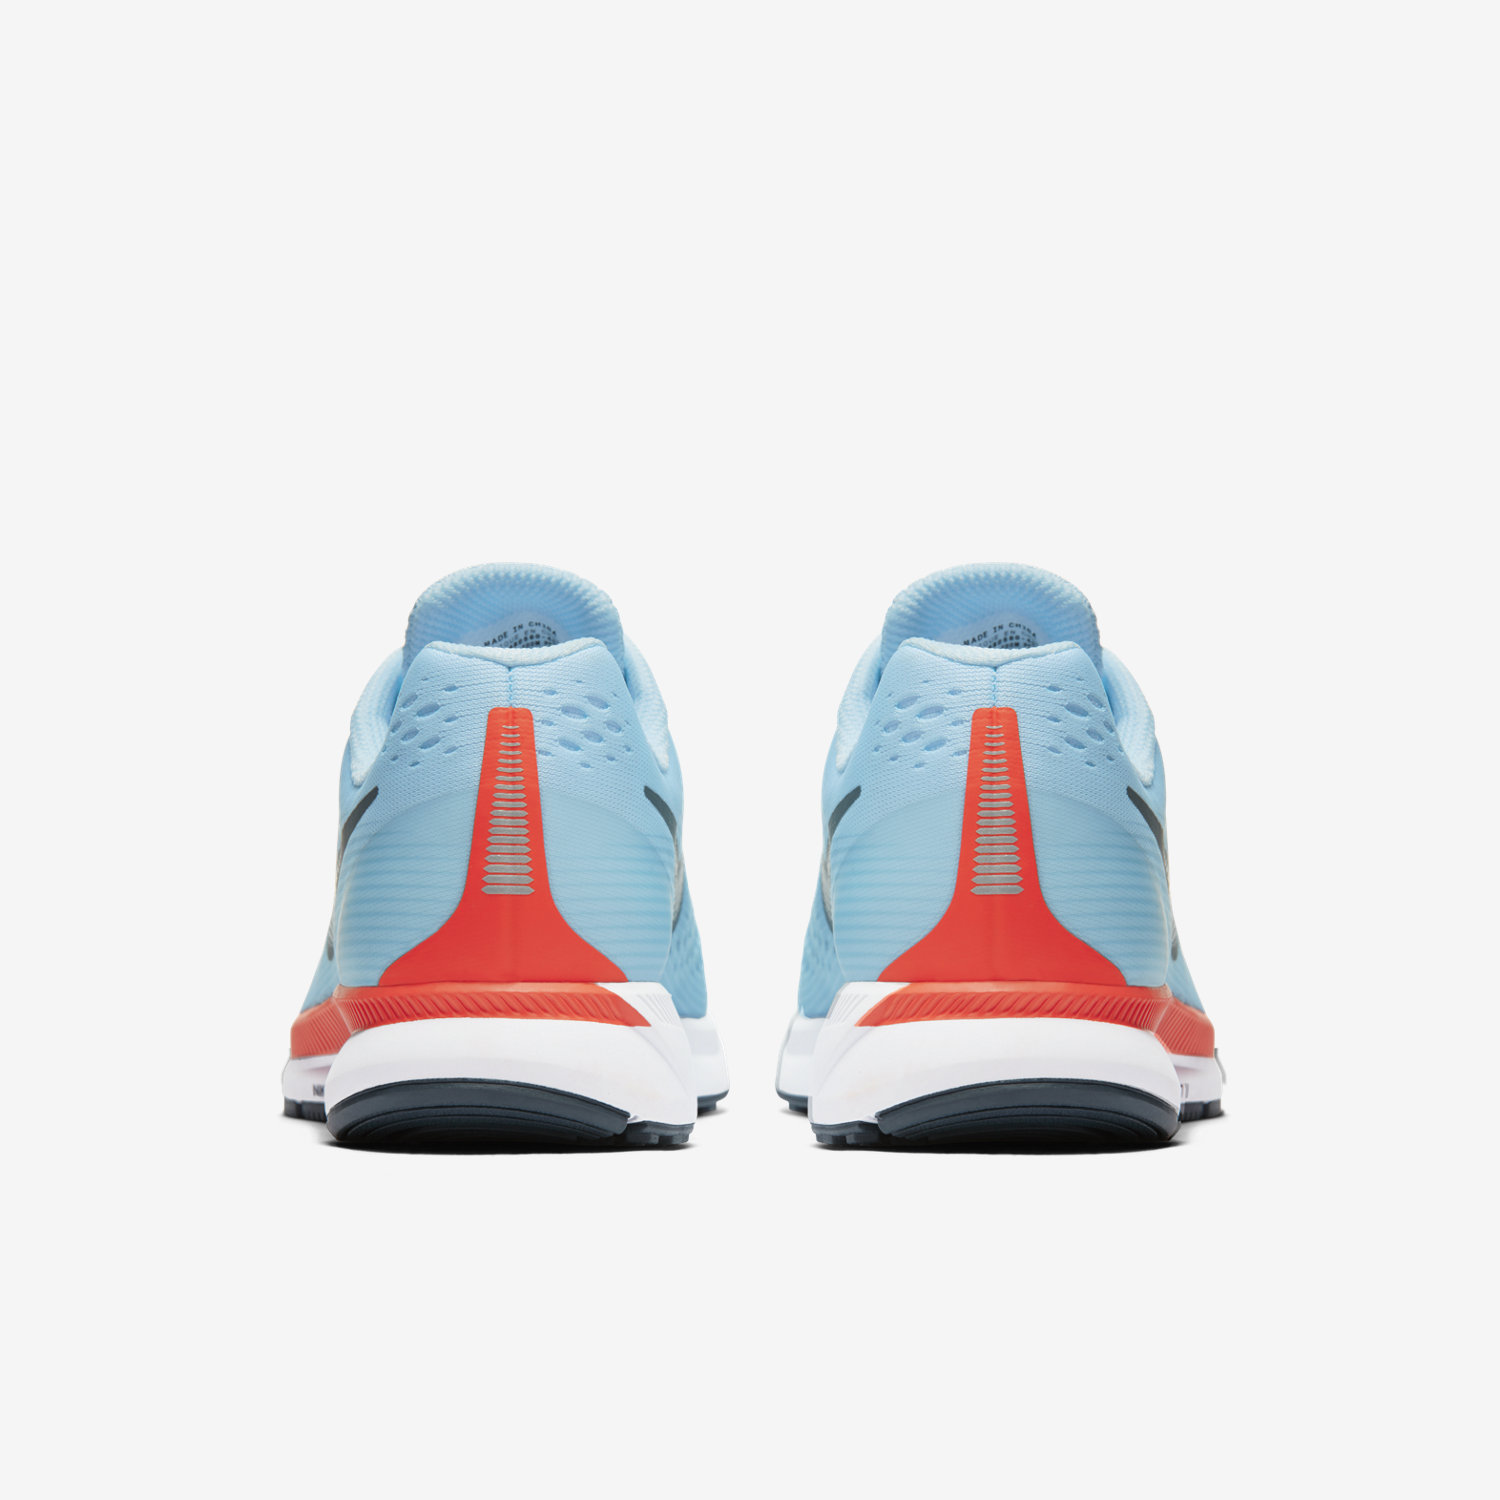 nike running shoes. nike running shoes